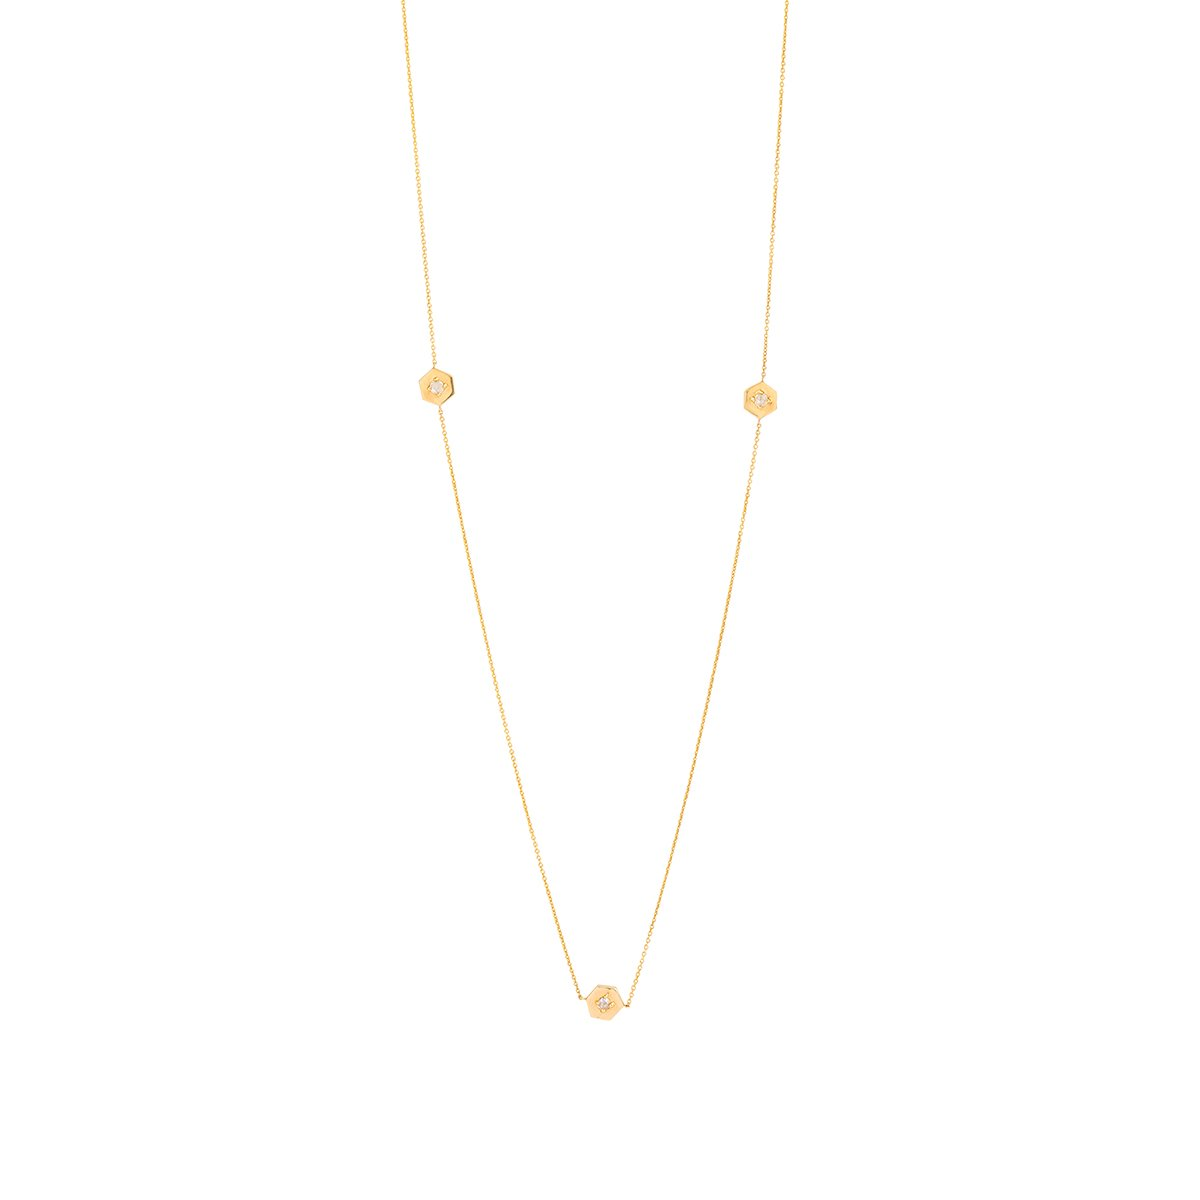 Meredith Young Jewelry Mini Webb Diamond Necklace